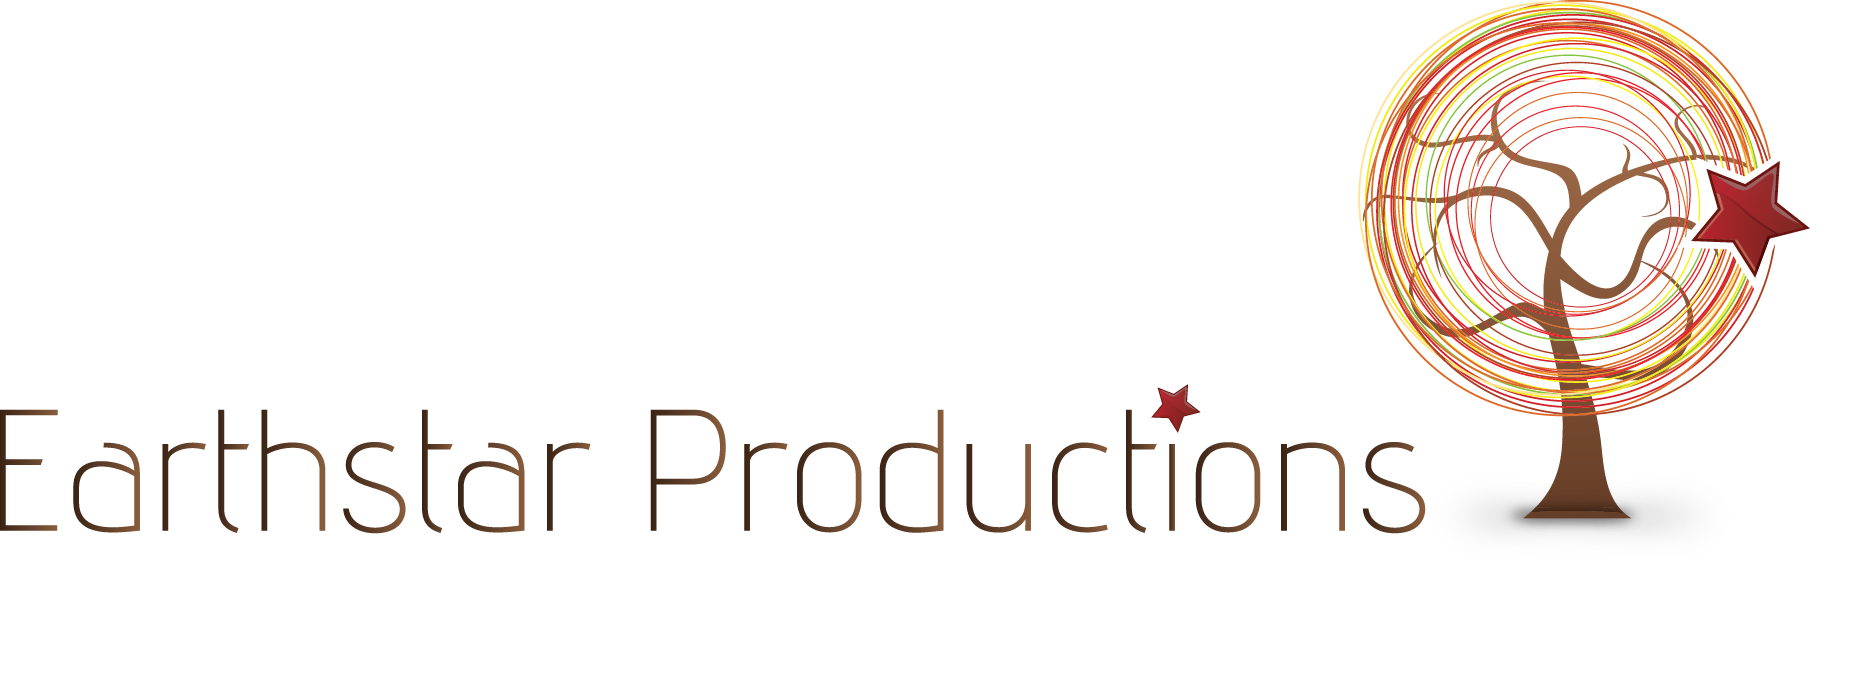 Earthstar Productions